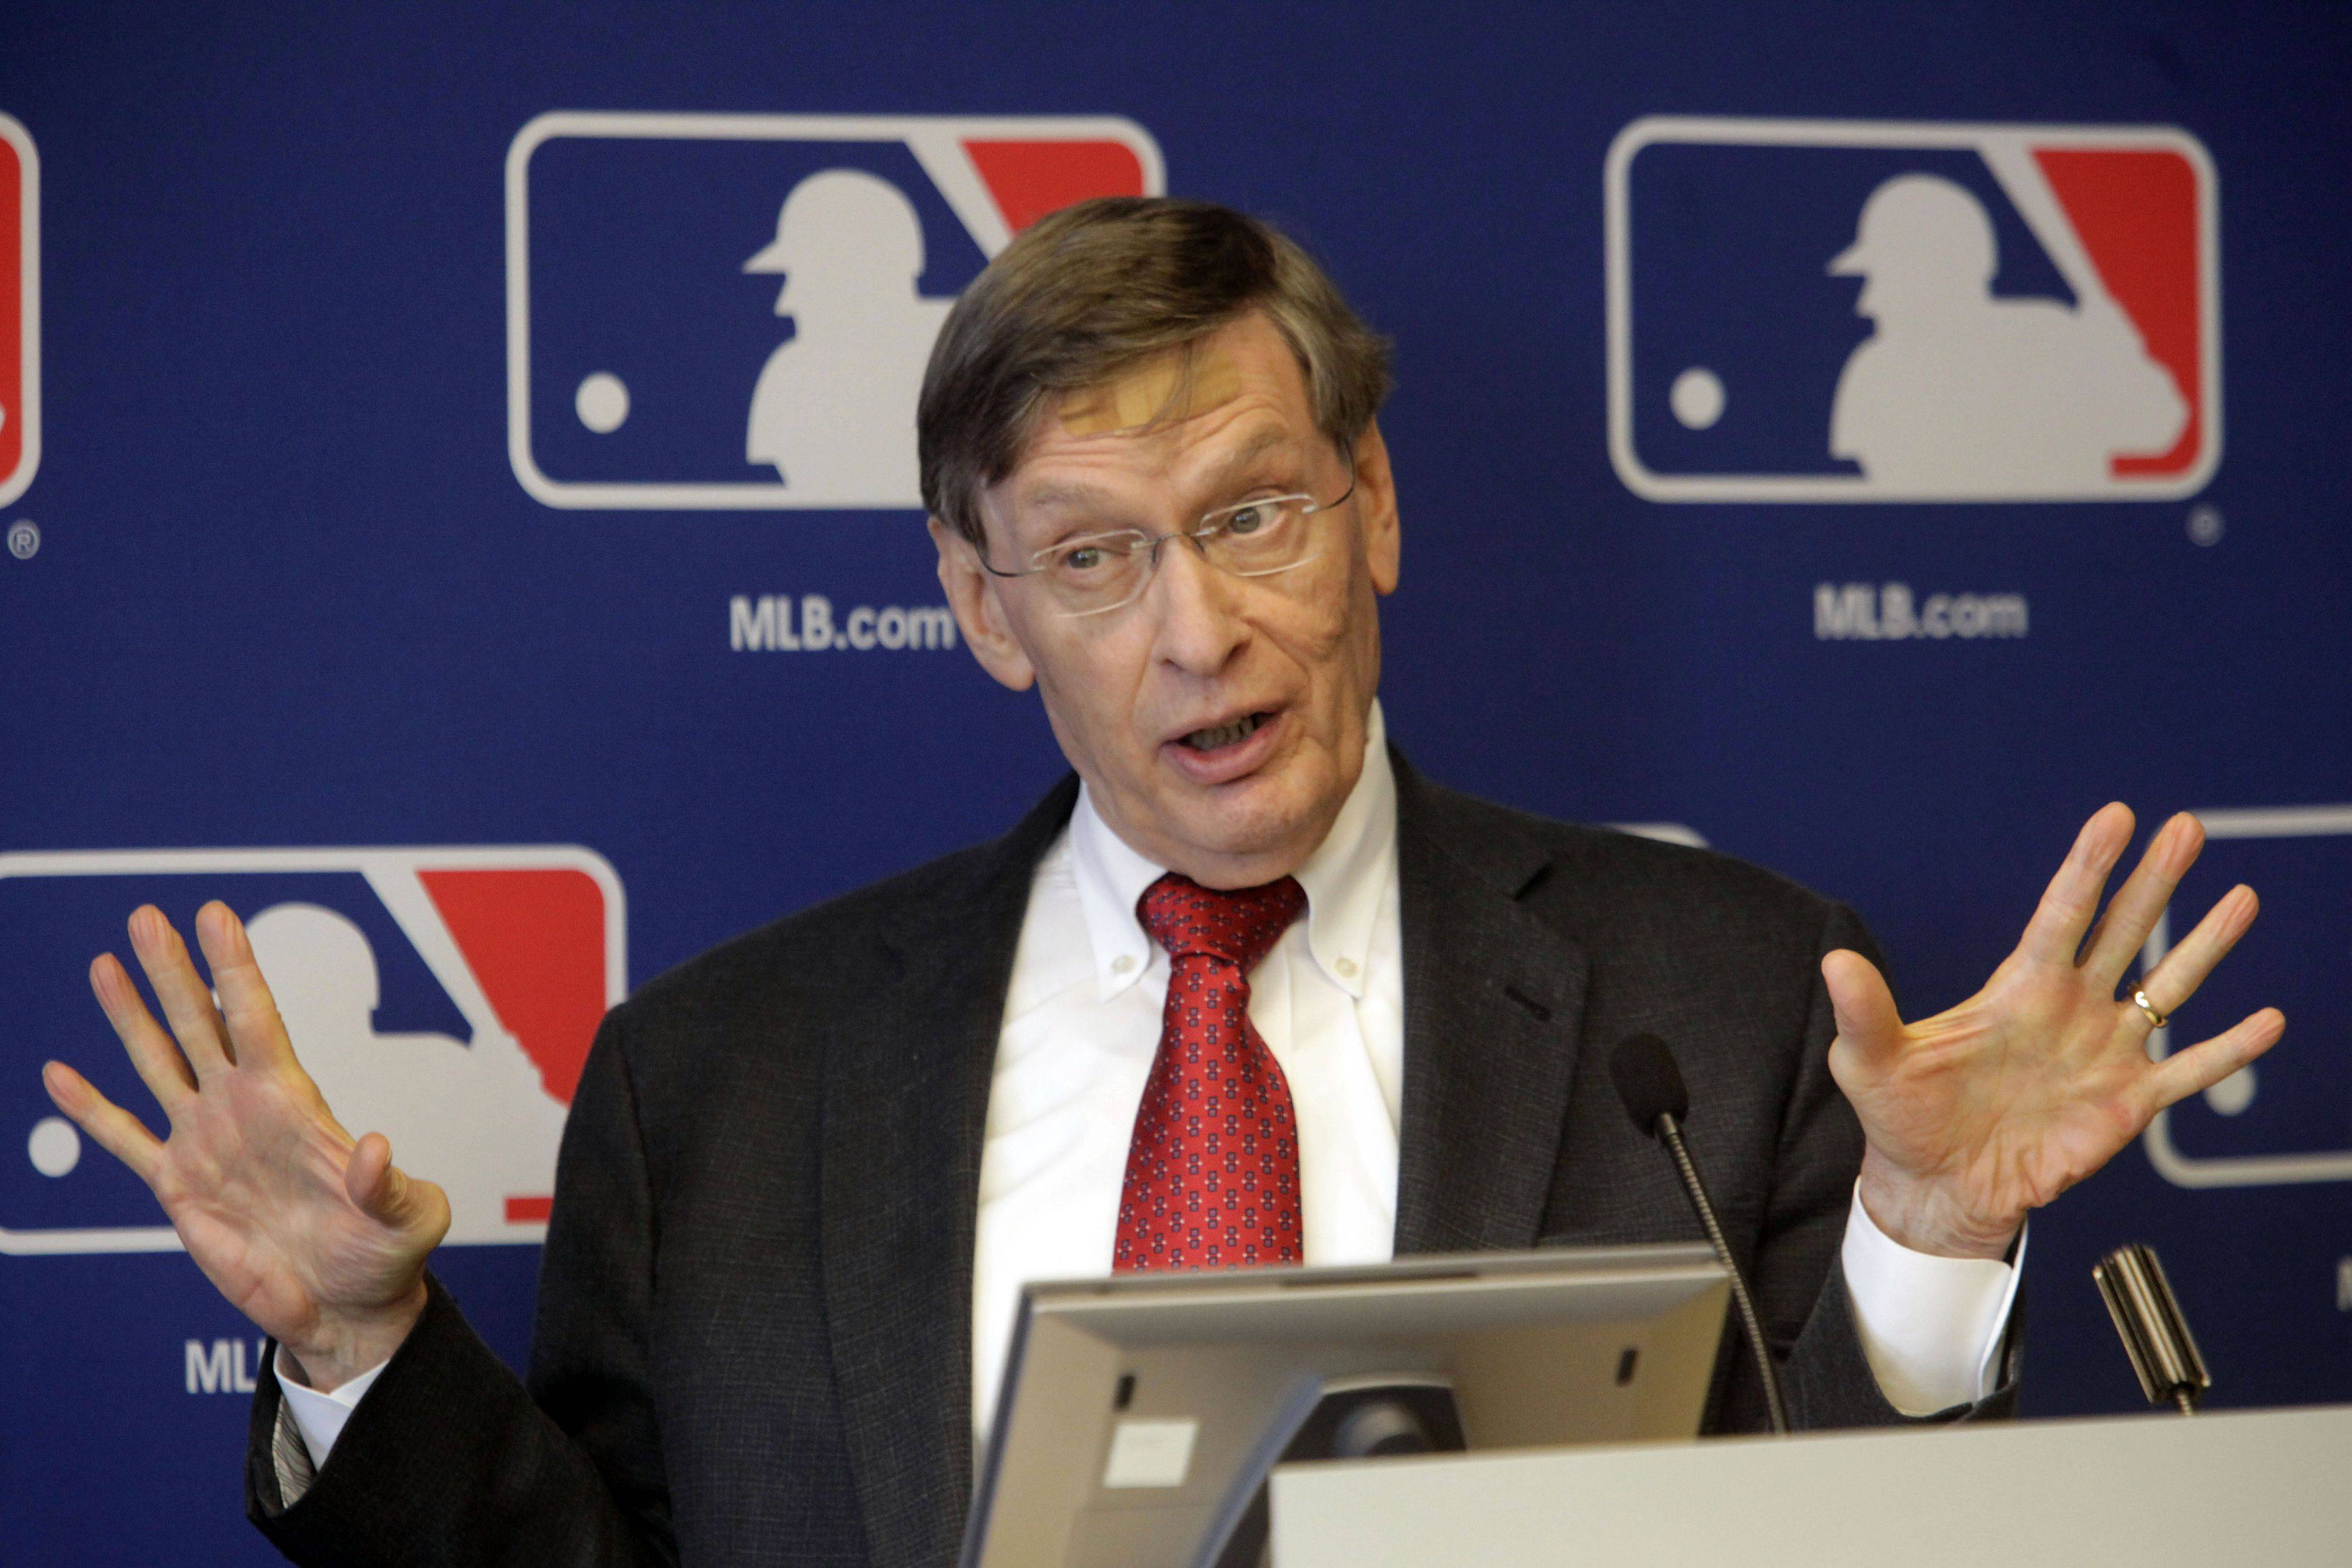 Baseball commissioner Bud Selig makes Bob Frisk's list of best quotes of the year for his comments when a statue of him was unveiled in Milwaukee.